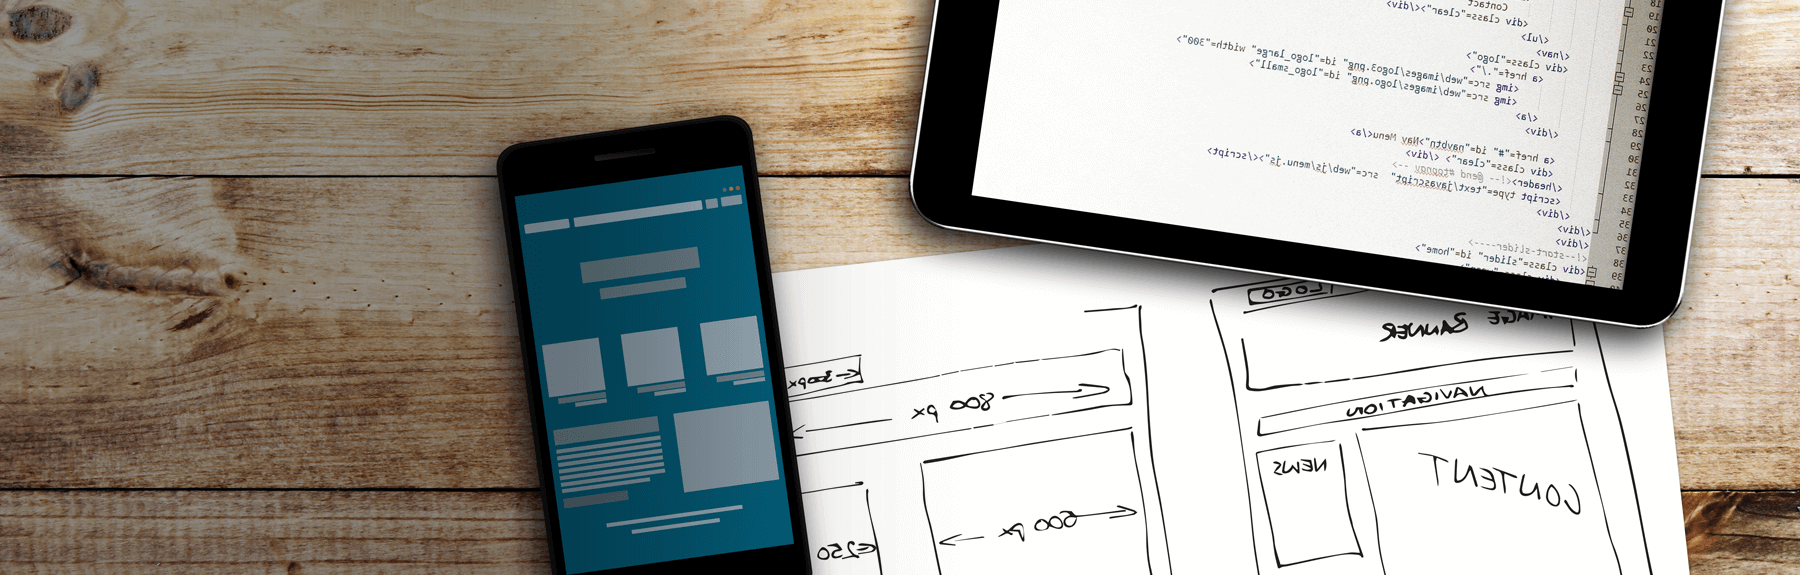 wireframes-prototypes-spot-the-difference